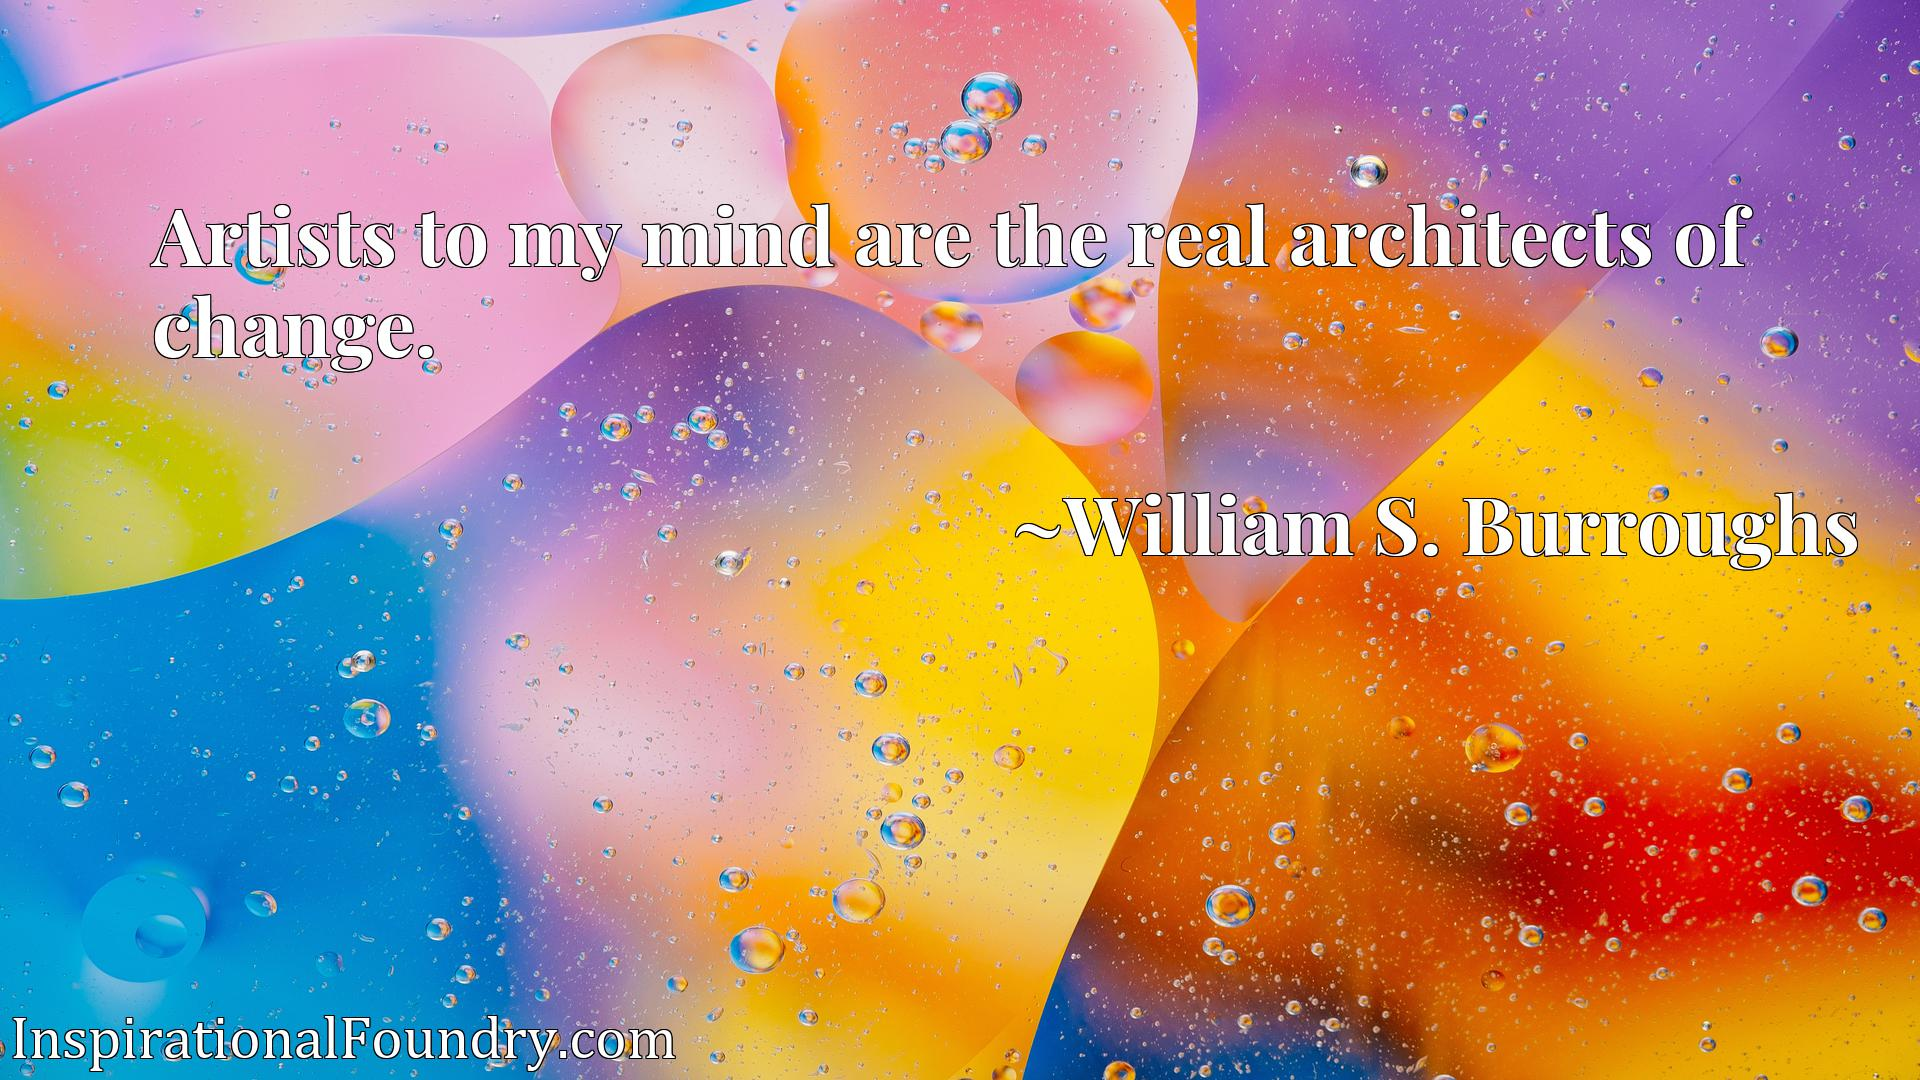 Artists to my mind are the real architects of change.